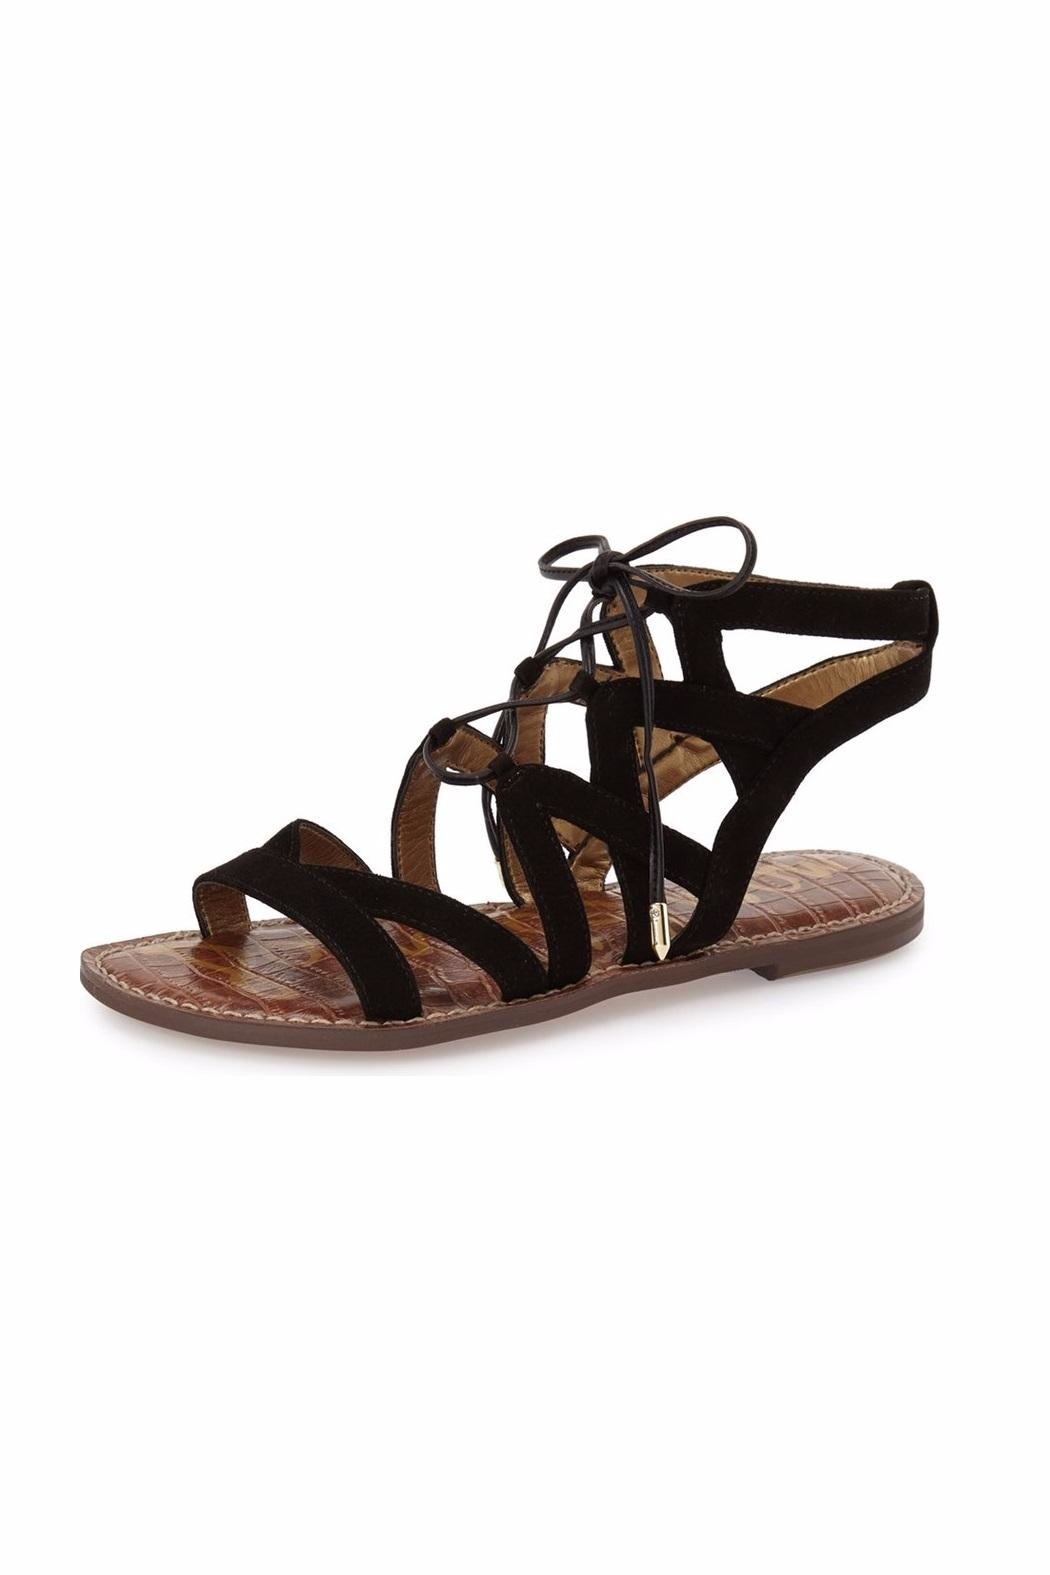 ab5210430fd Sam Edelman Gemma Lace Up Sandal from Hudson Valley by Bfree ...